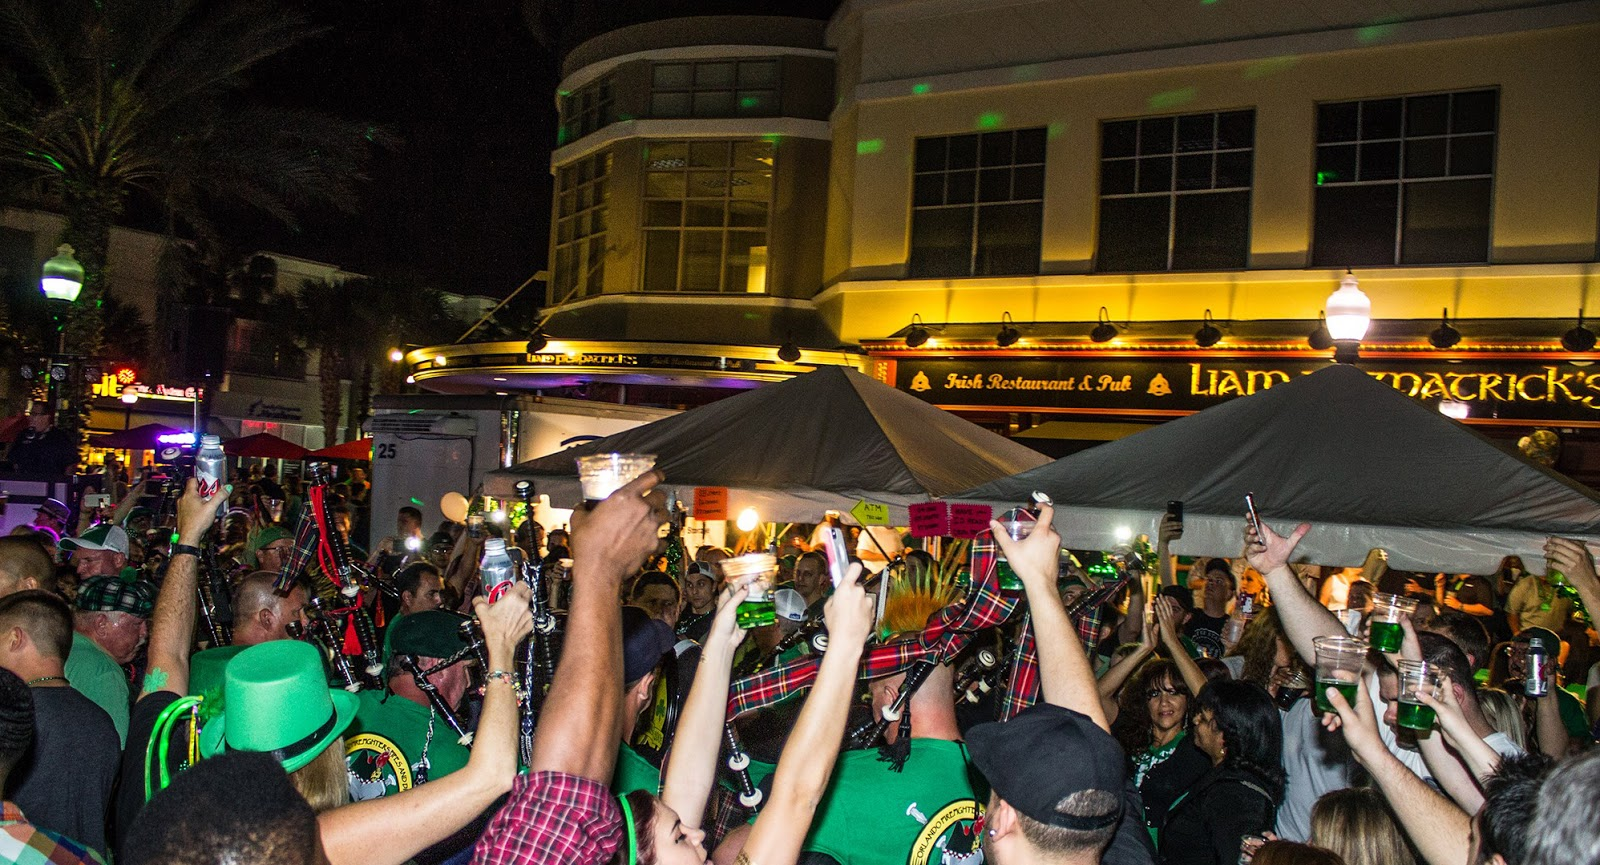 Tastes Of Orlando: St. Patrick's Day Block Party at Liam Fitzpatrick's